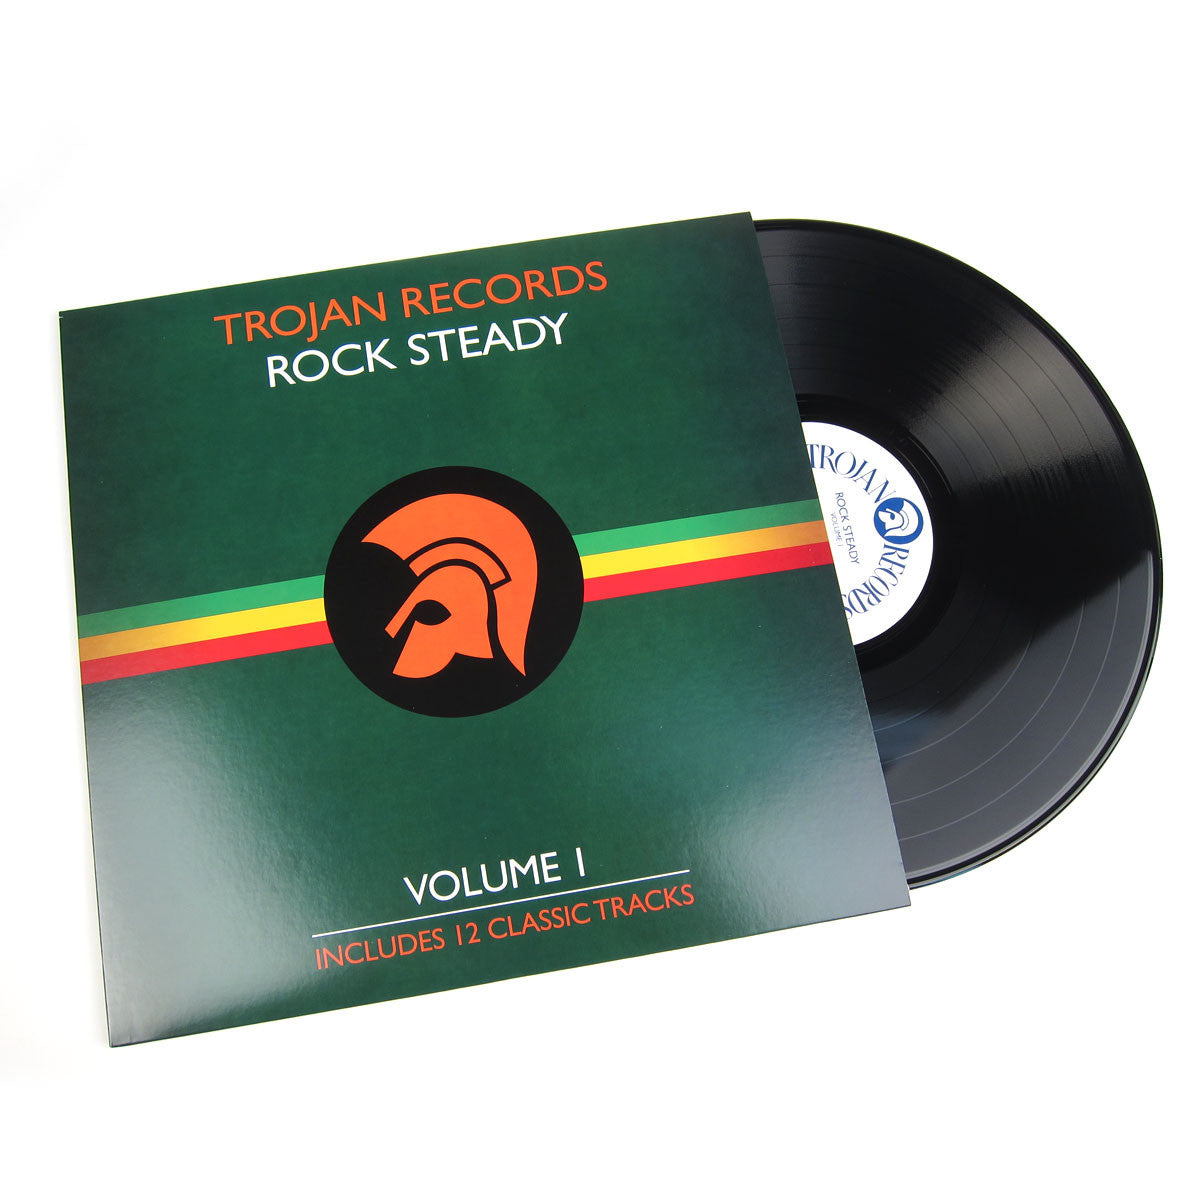 Trojan Records: Rock Steady Volume 1 Vinyl LP